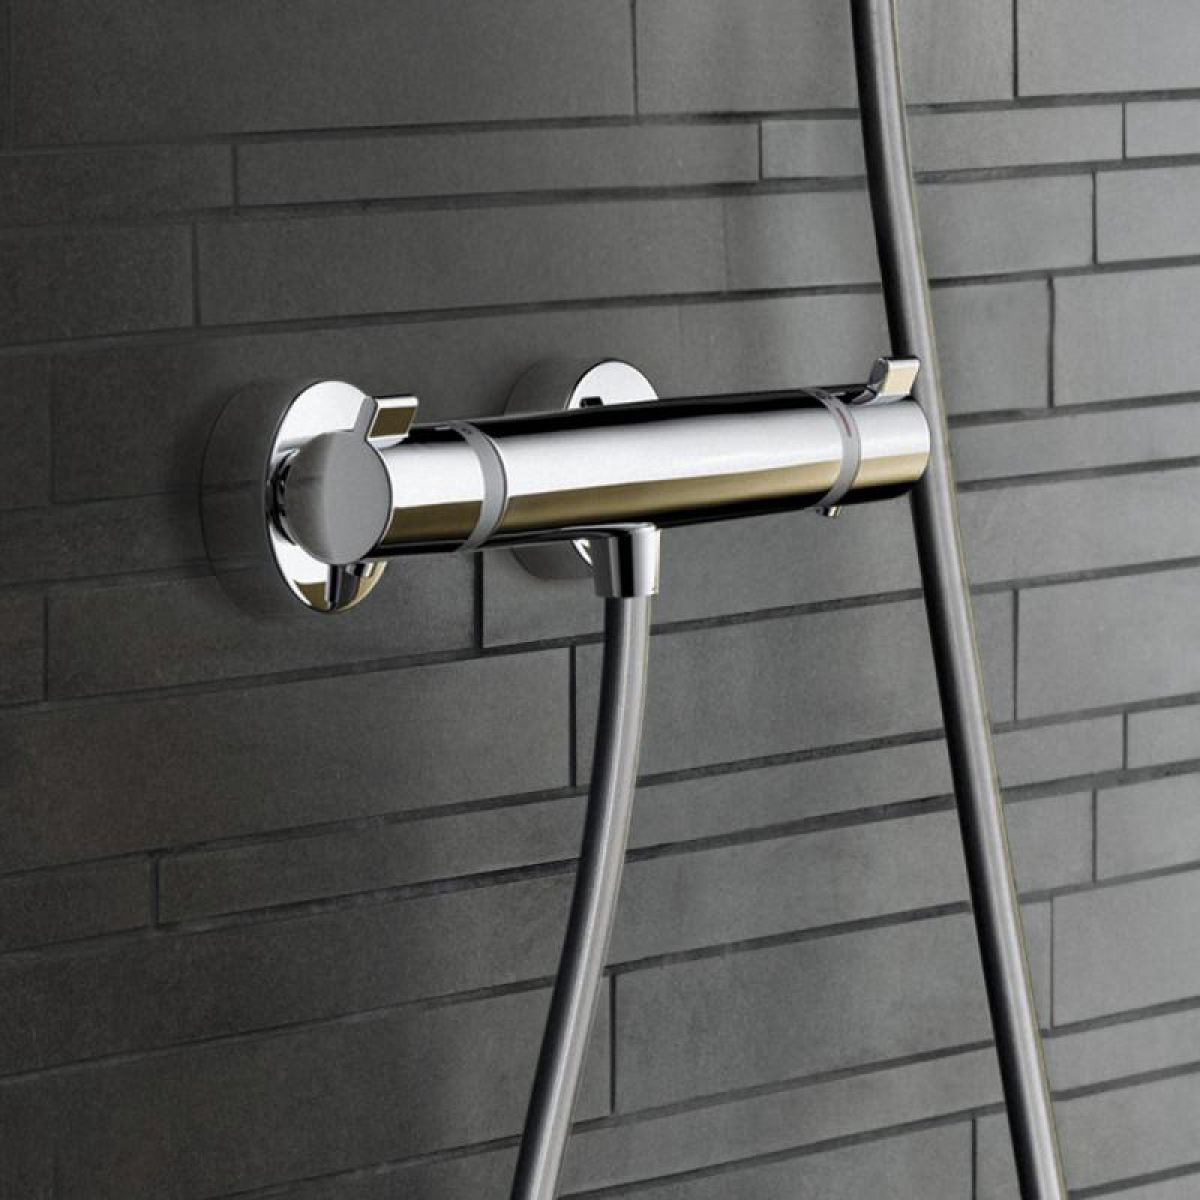 hansgrohe ecostat comfort exposed shower mixer uk bathrooms. Black Bedroom Furniture Sets. Home Design Ideas